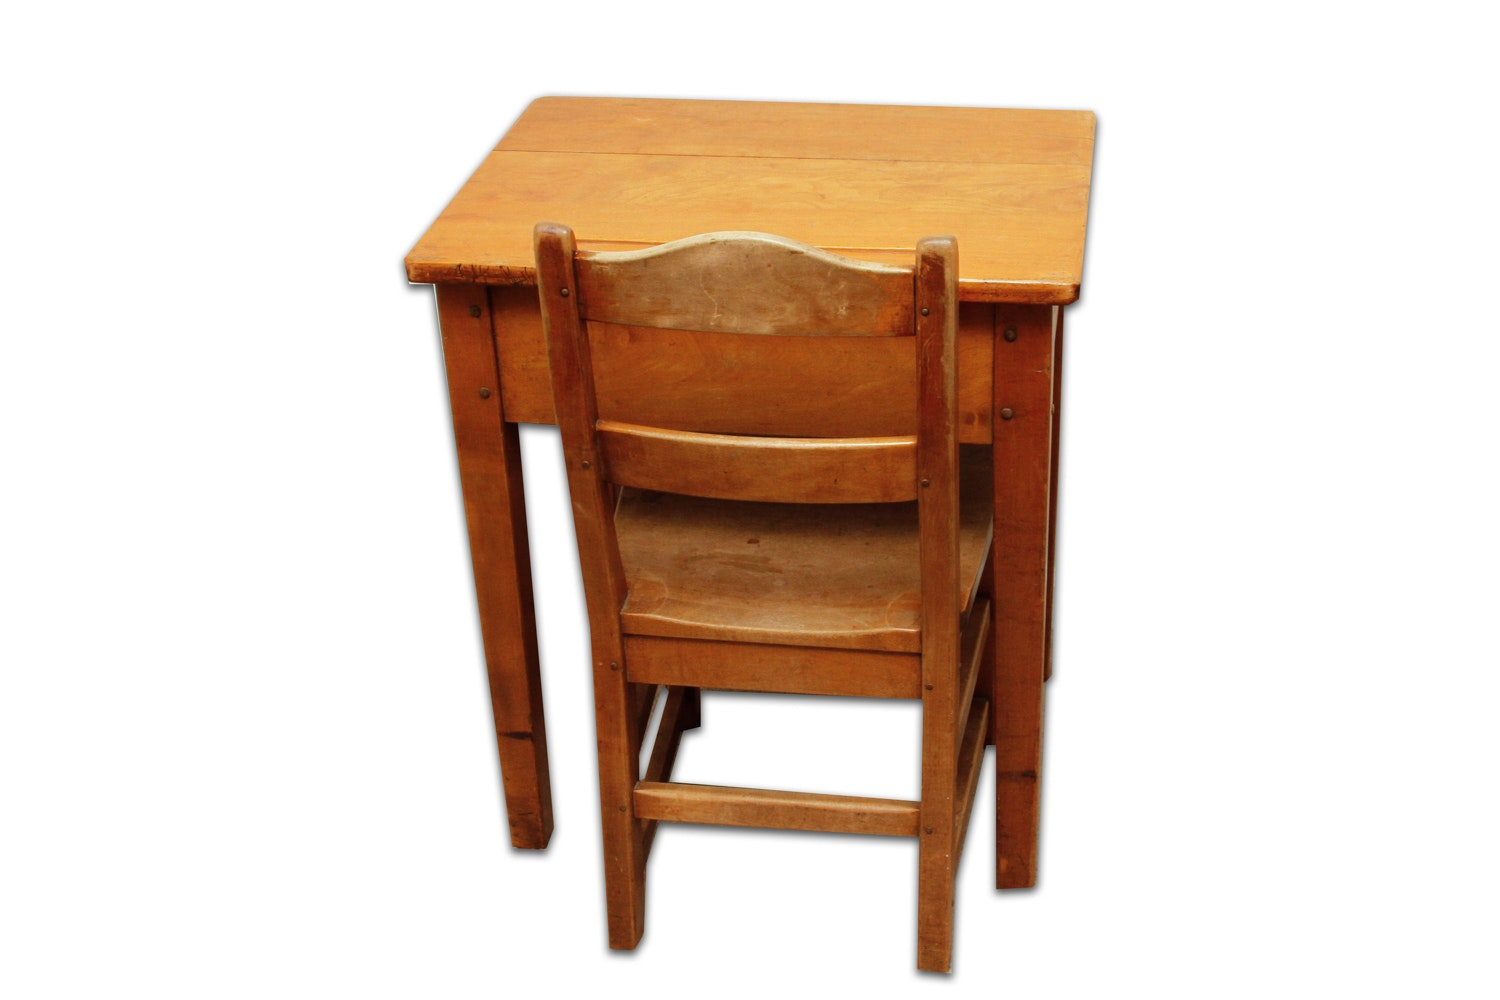 Vintage Wooden Child's Desk and Chair by Stickley